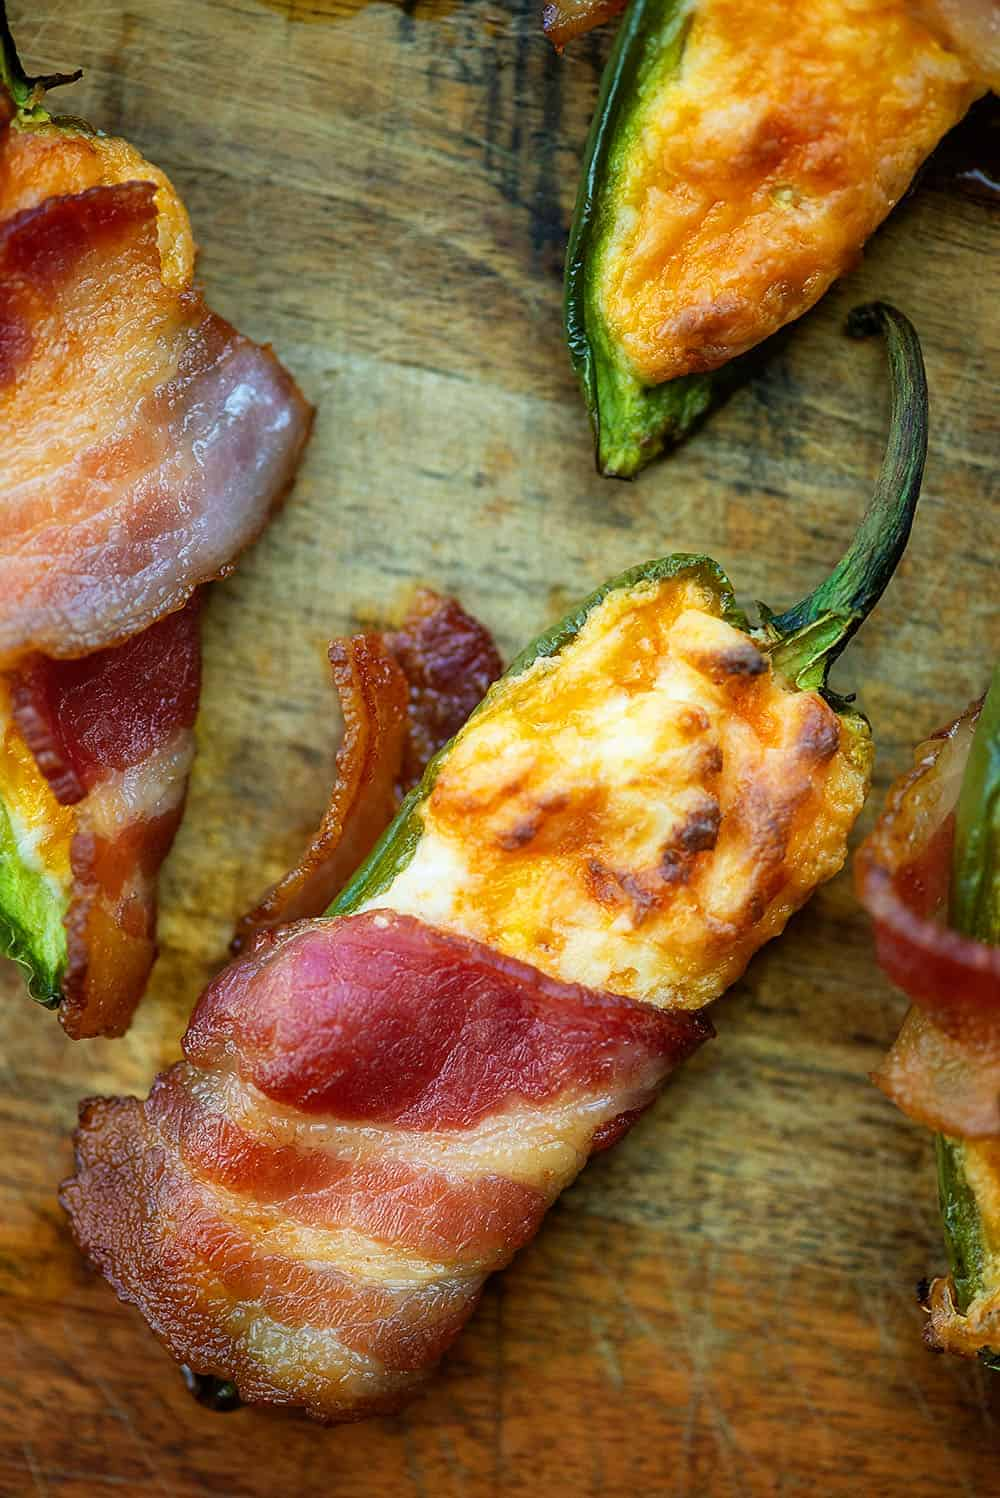 keto jalapeno poppers wrapped in bacon on a cutting board